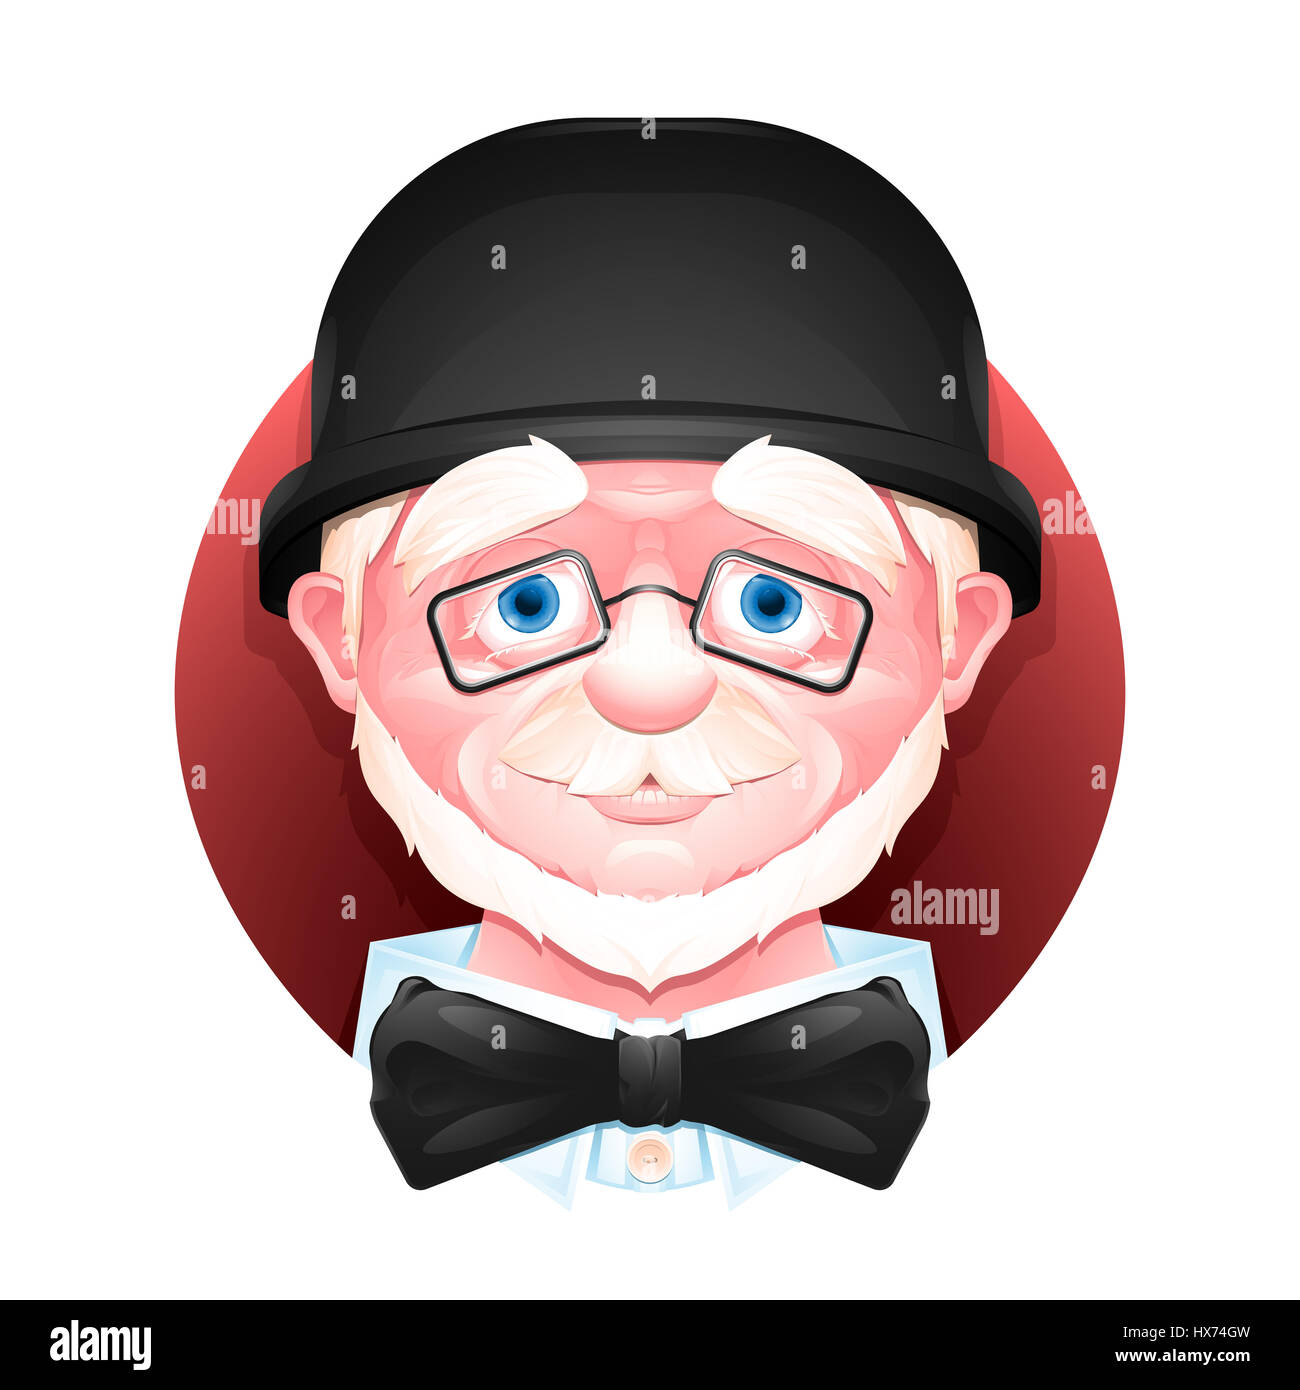 Close up portrait of a charming aged man in a bowler hat, bow tie and glasses. - Stock Image